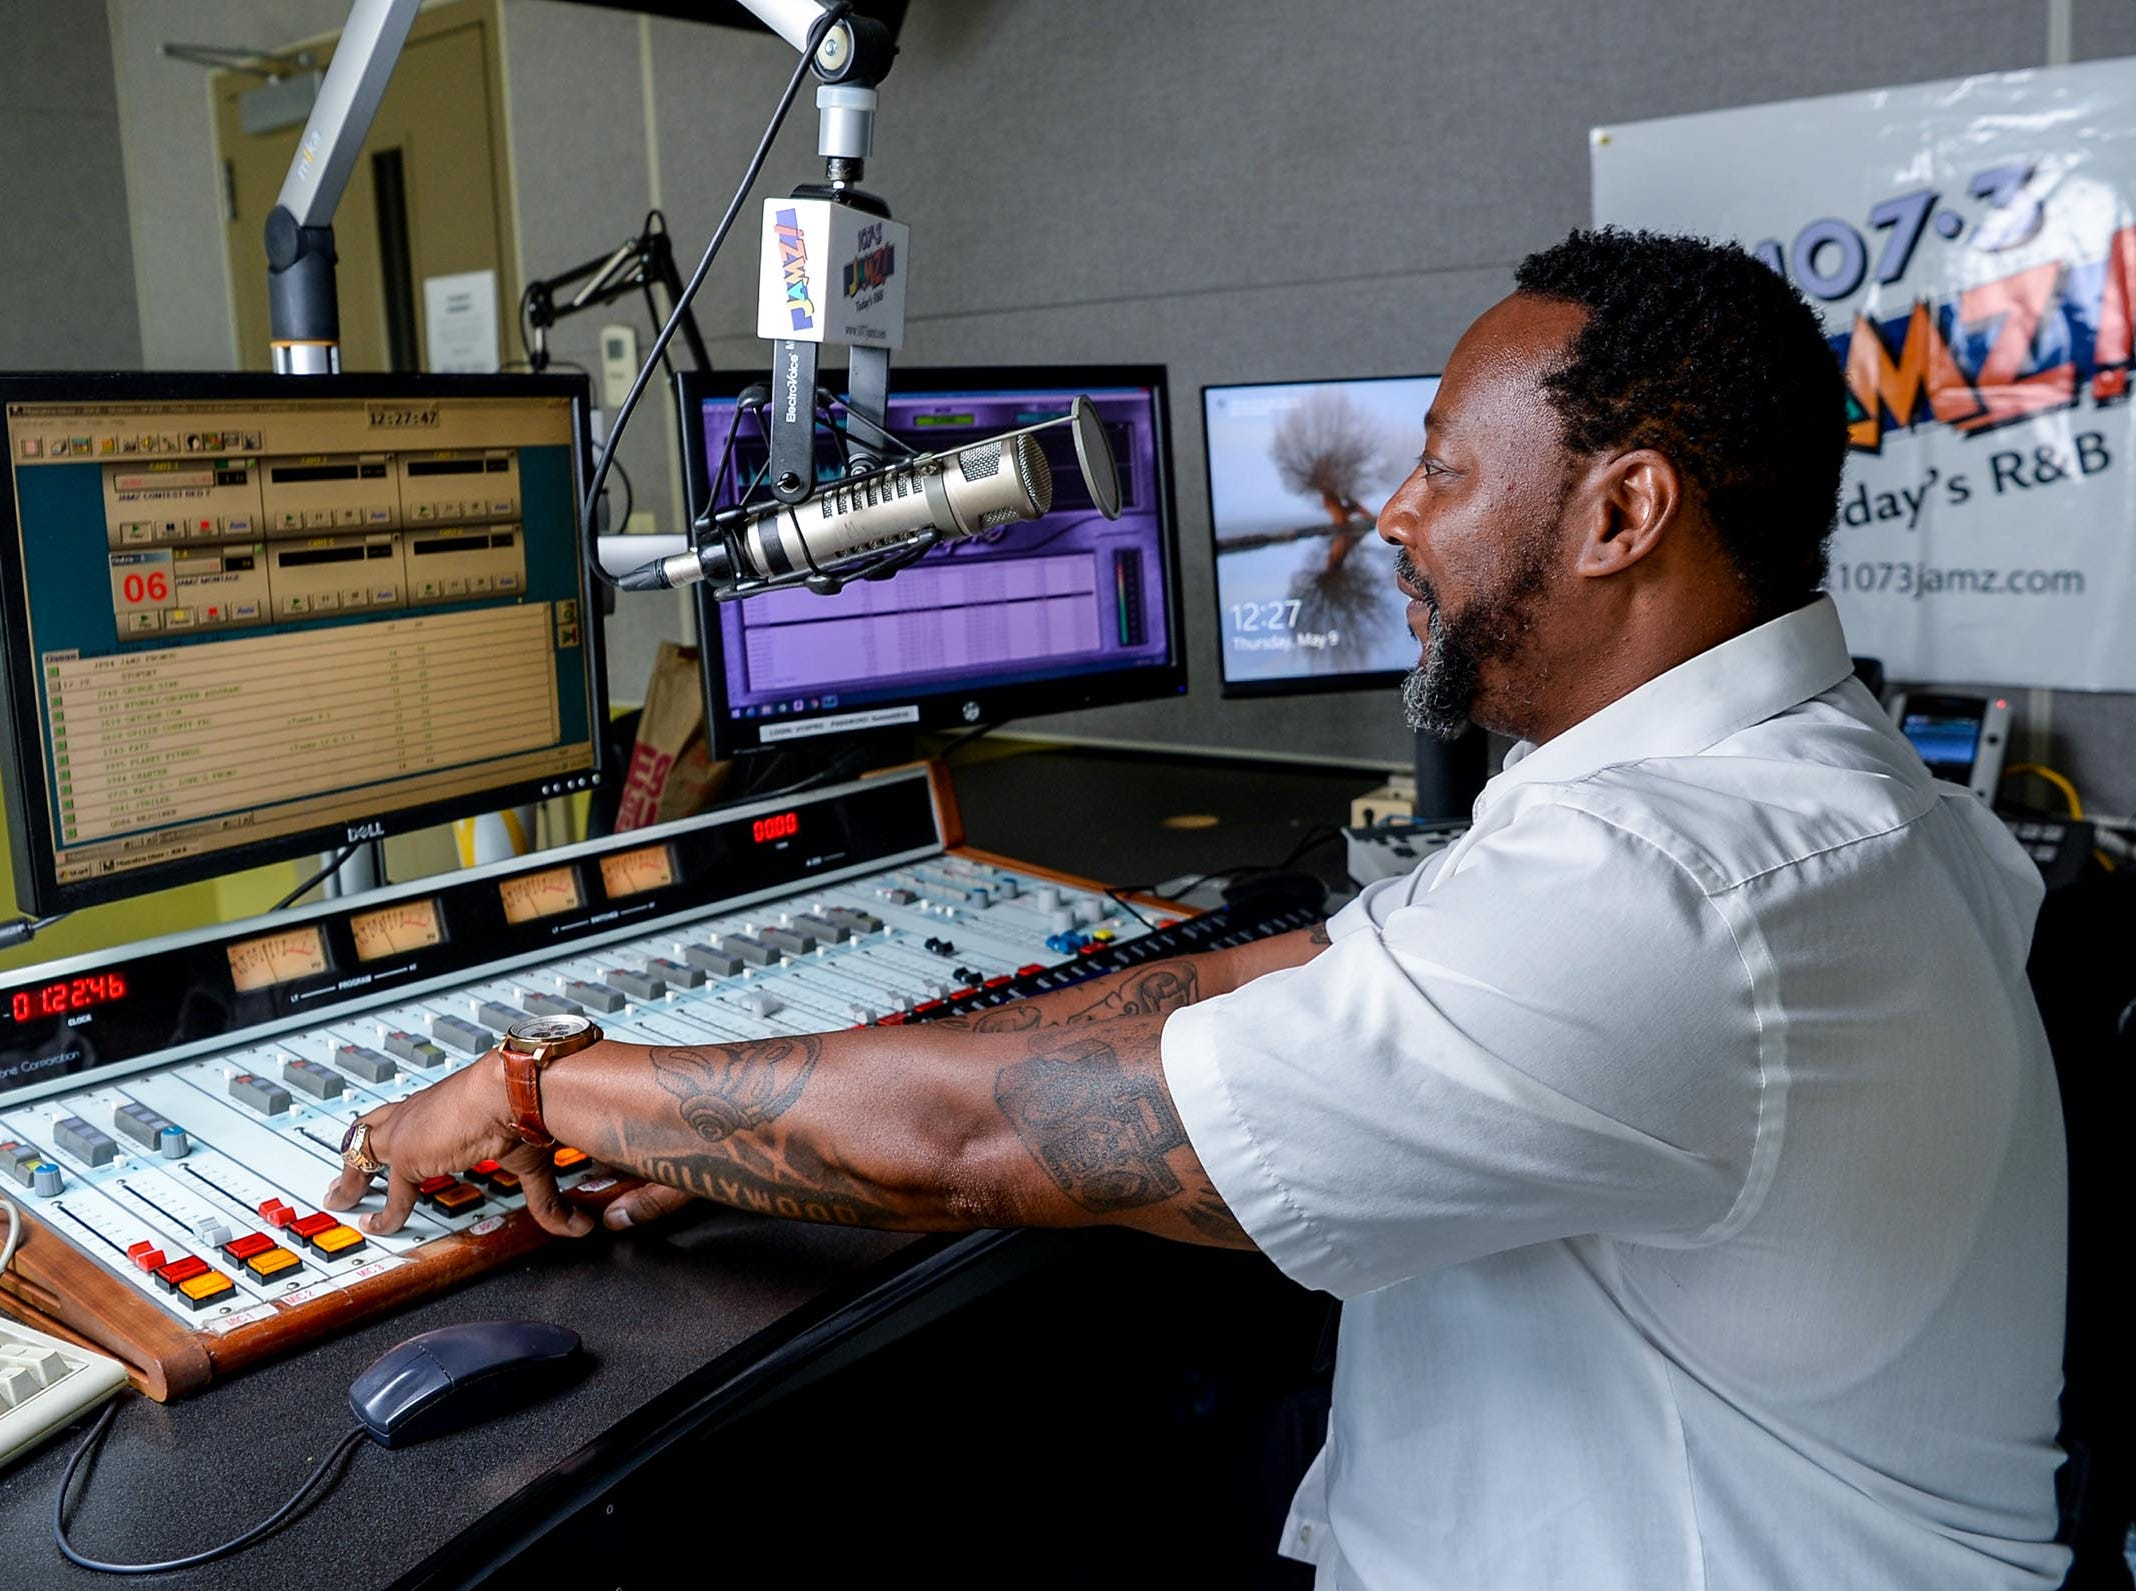 Tone Hollywood (Tony Wheeler) of 107.3 FM JAMZ stands by his computer getting ready for the next moment he speaks between songs played on the radio station in downtown Greenville in May 2019.